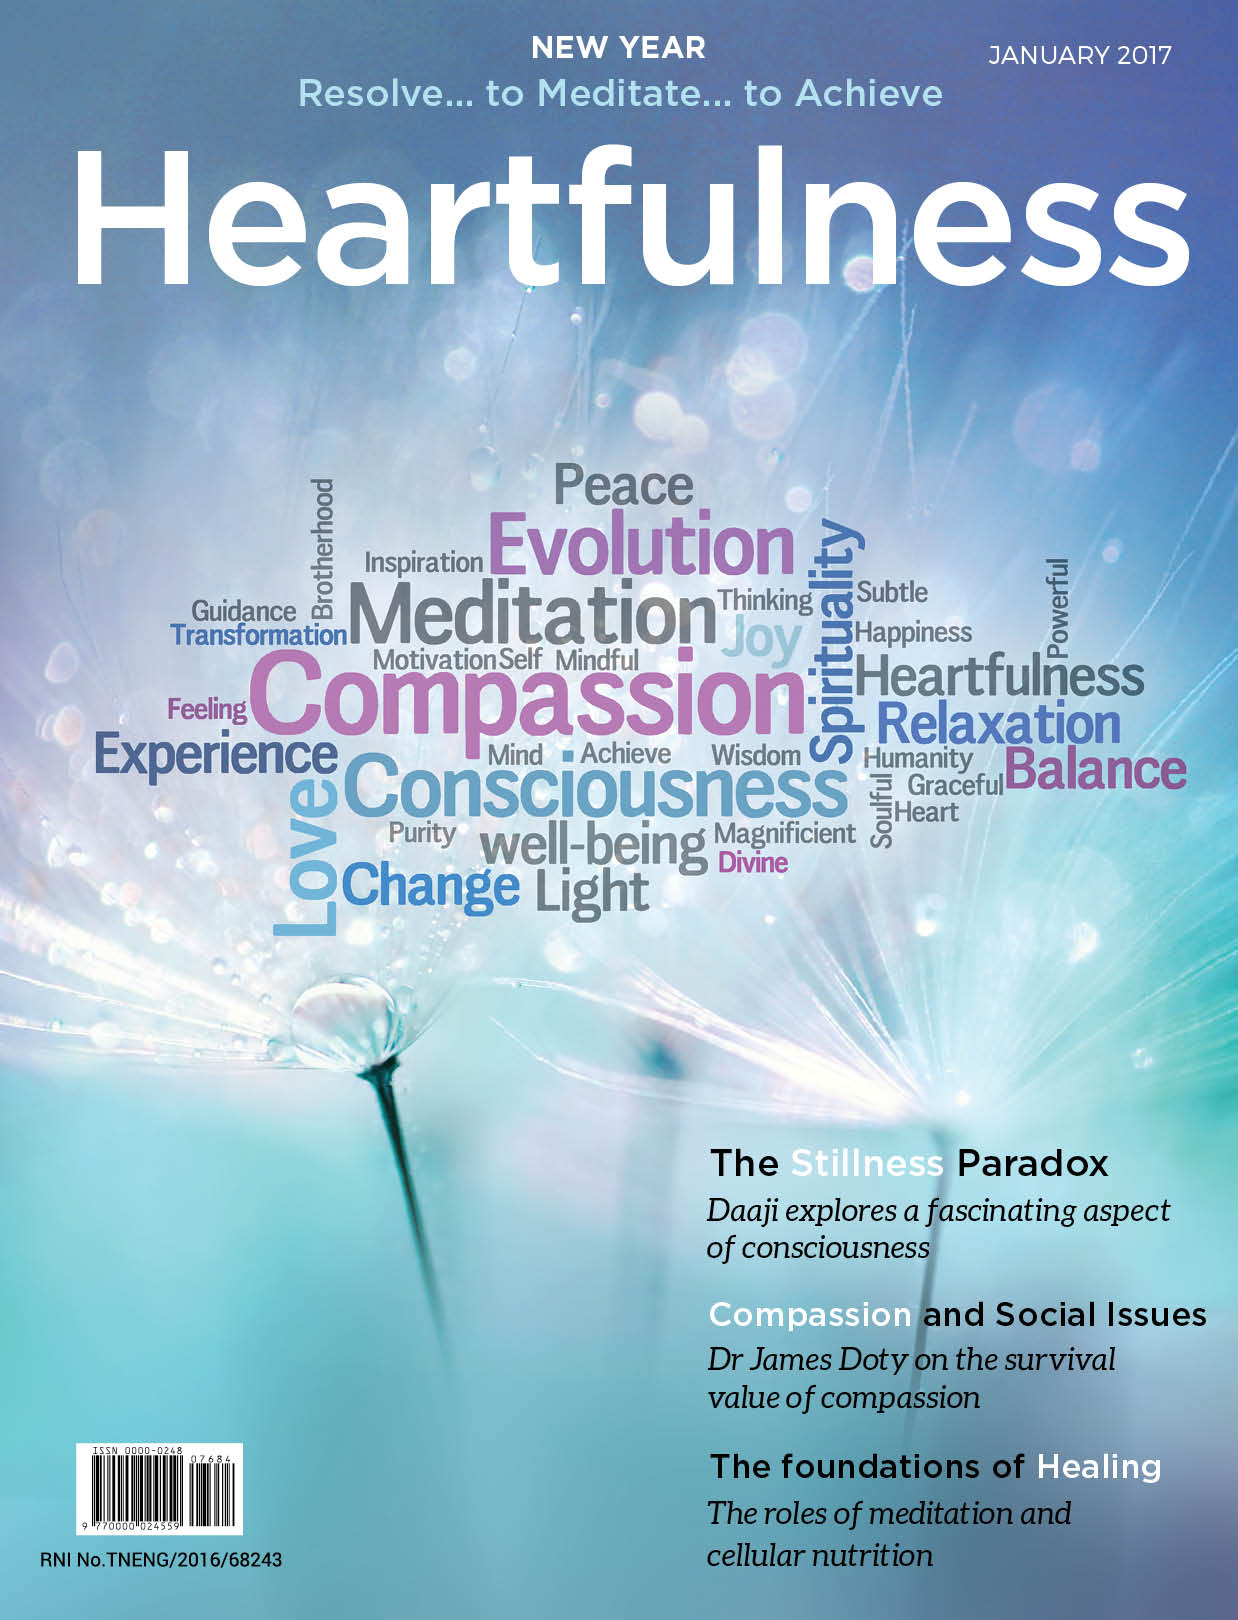 Heartfulness eMagazine - January 2017